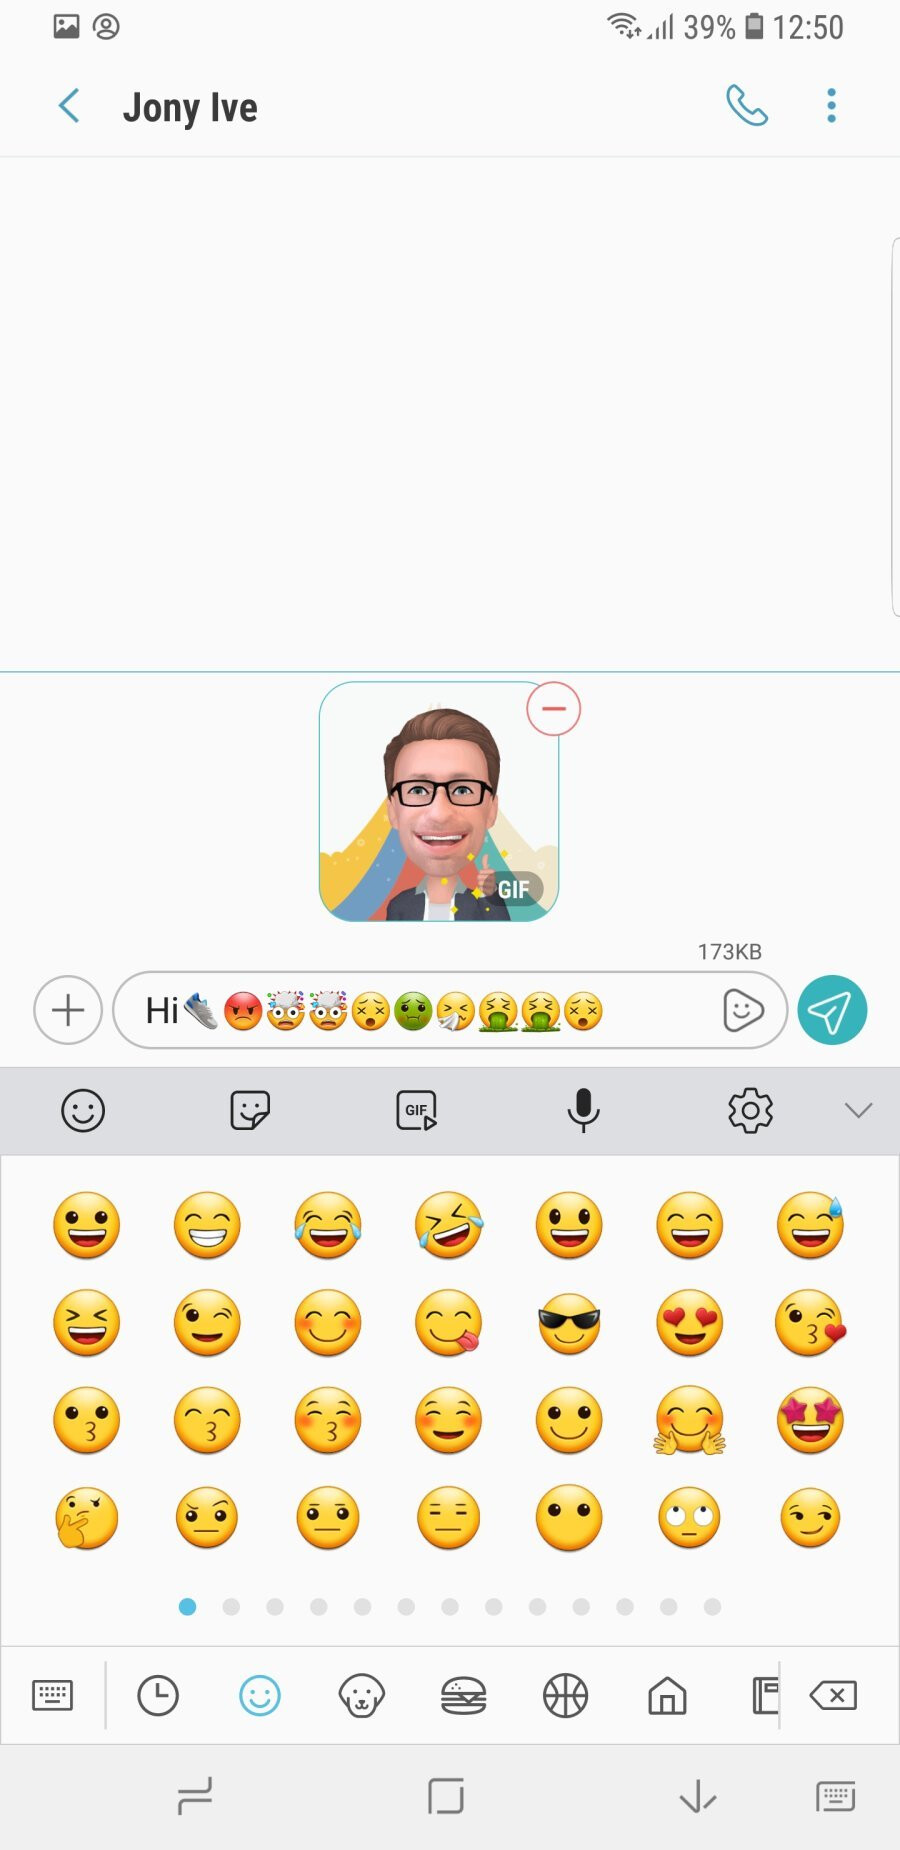 Samsung Messages - Samsung messaging app causes chaos among users, sends their pictures to random contacts